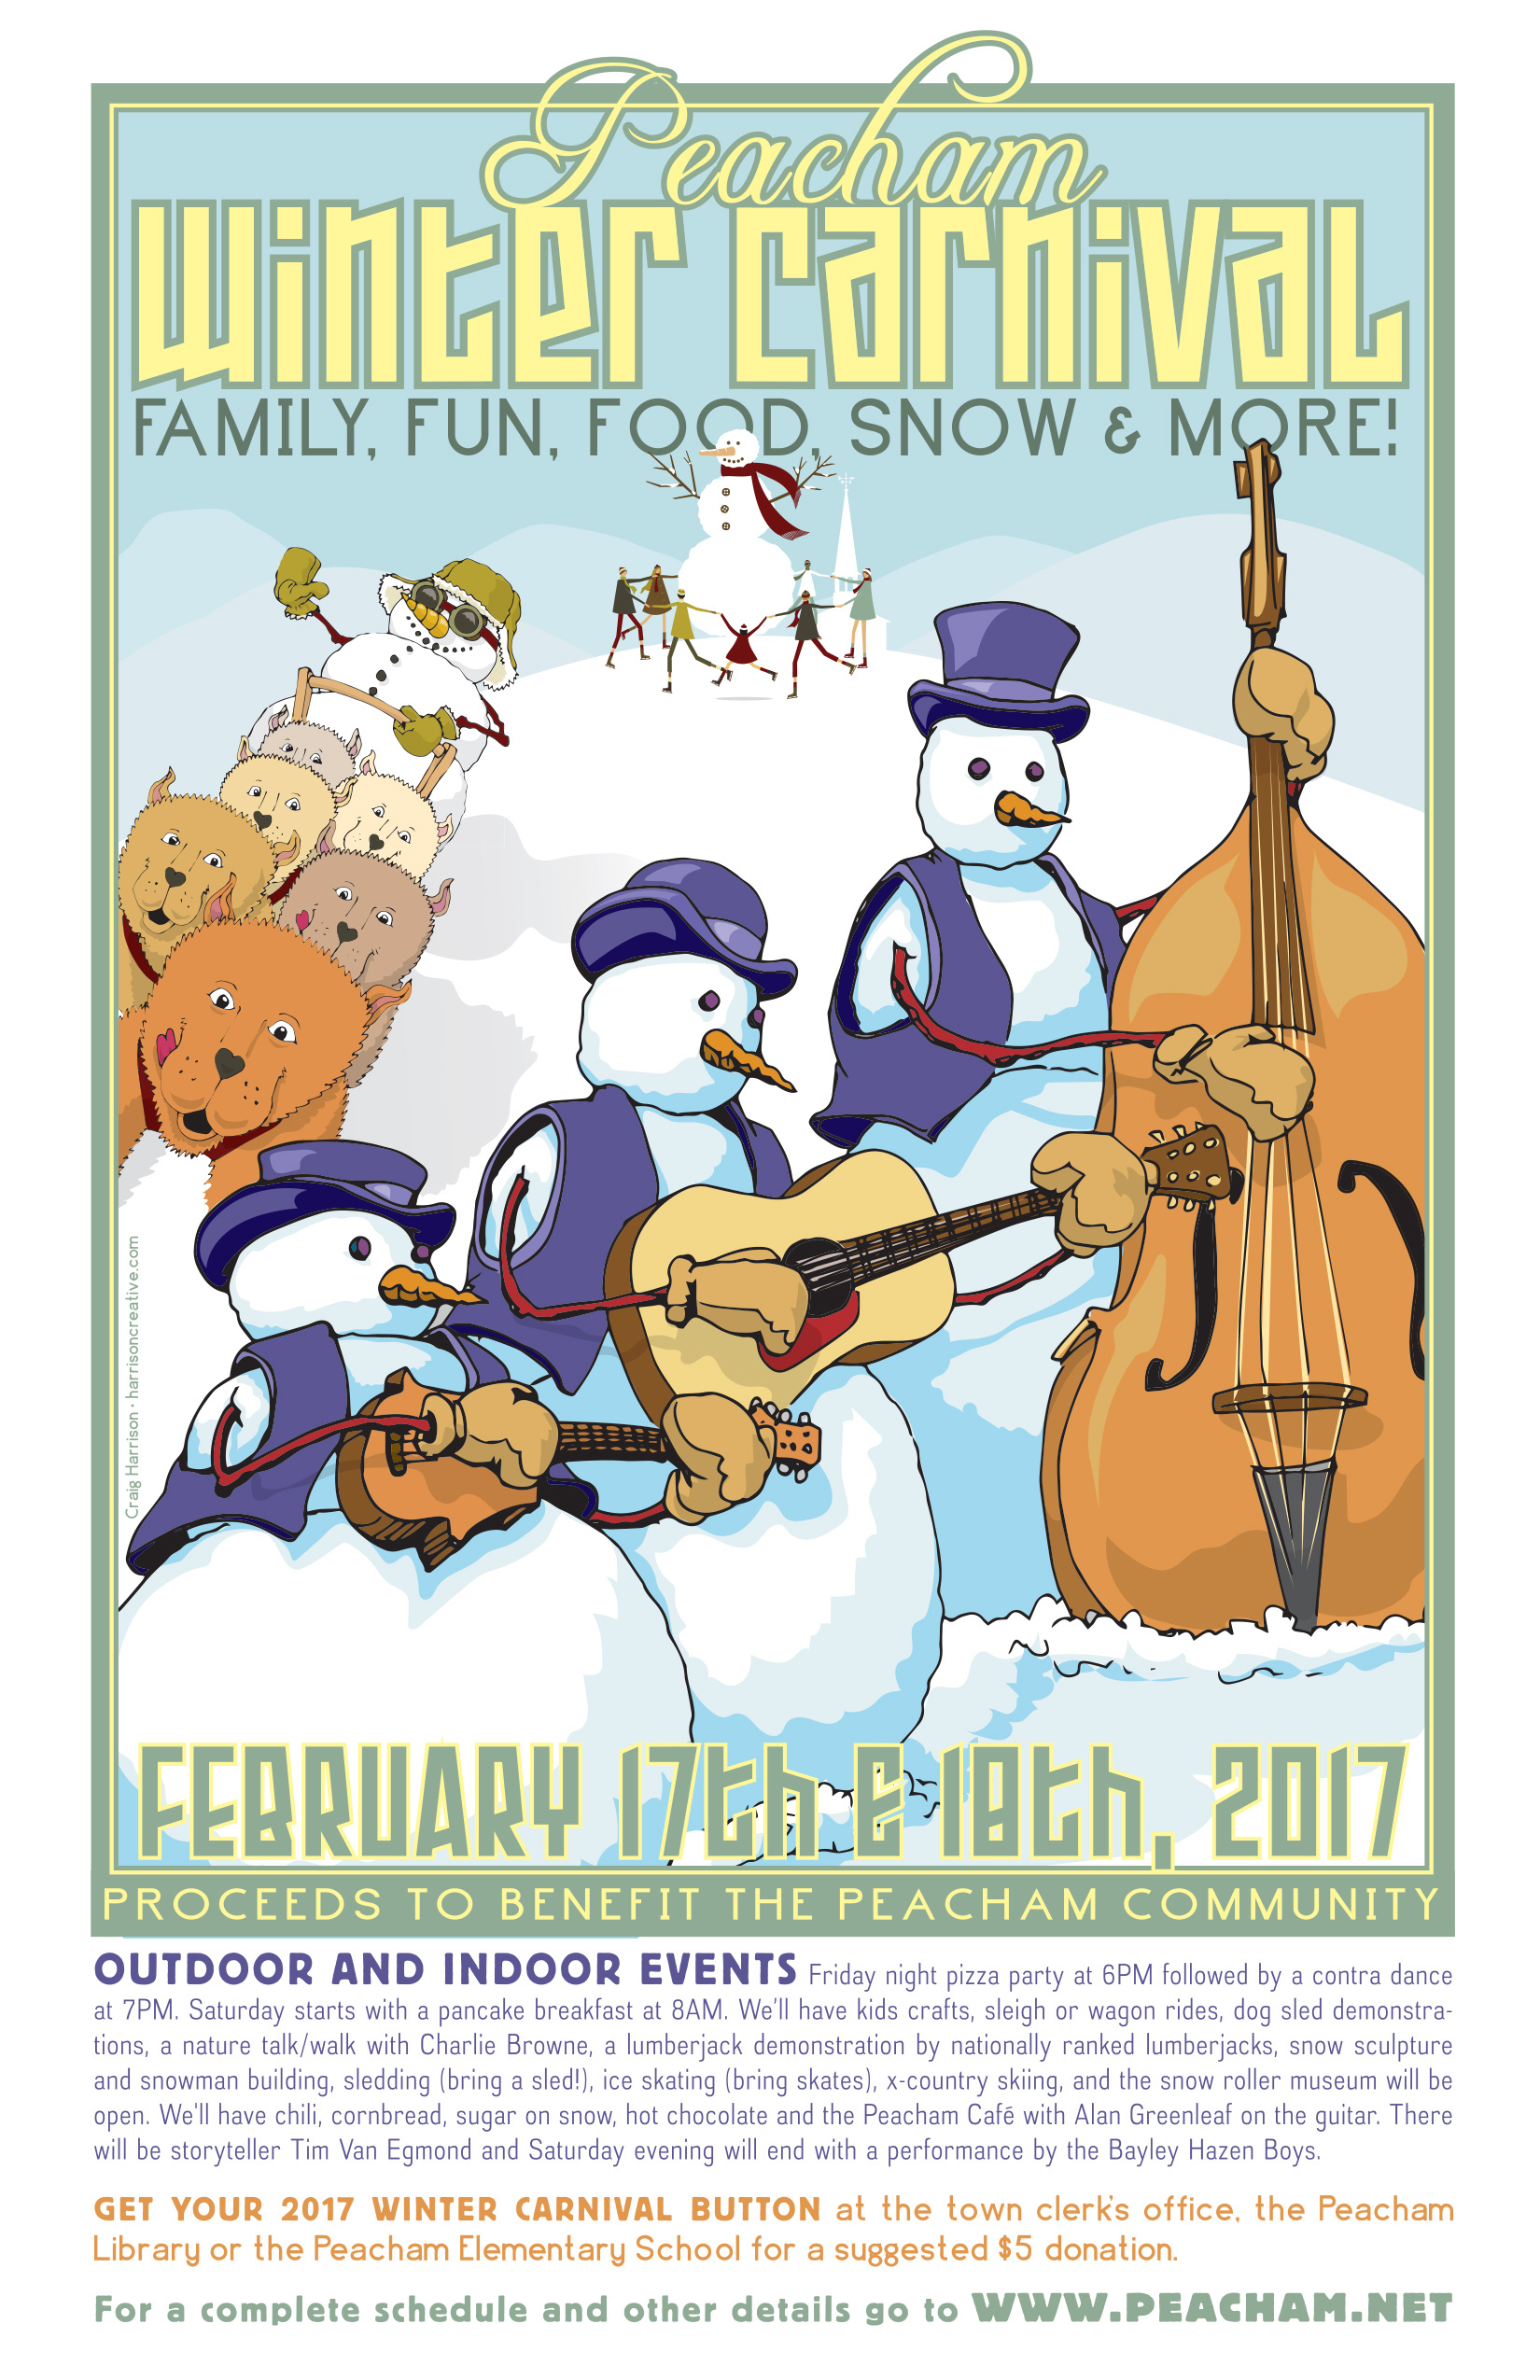 Peacham WInter Carnival 2017